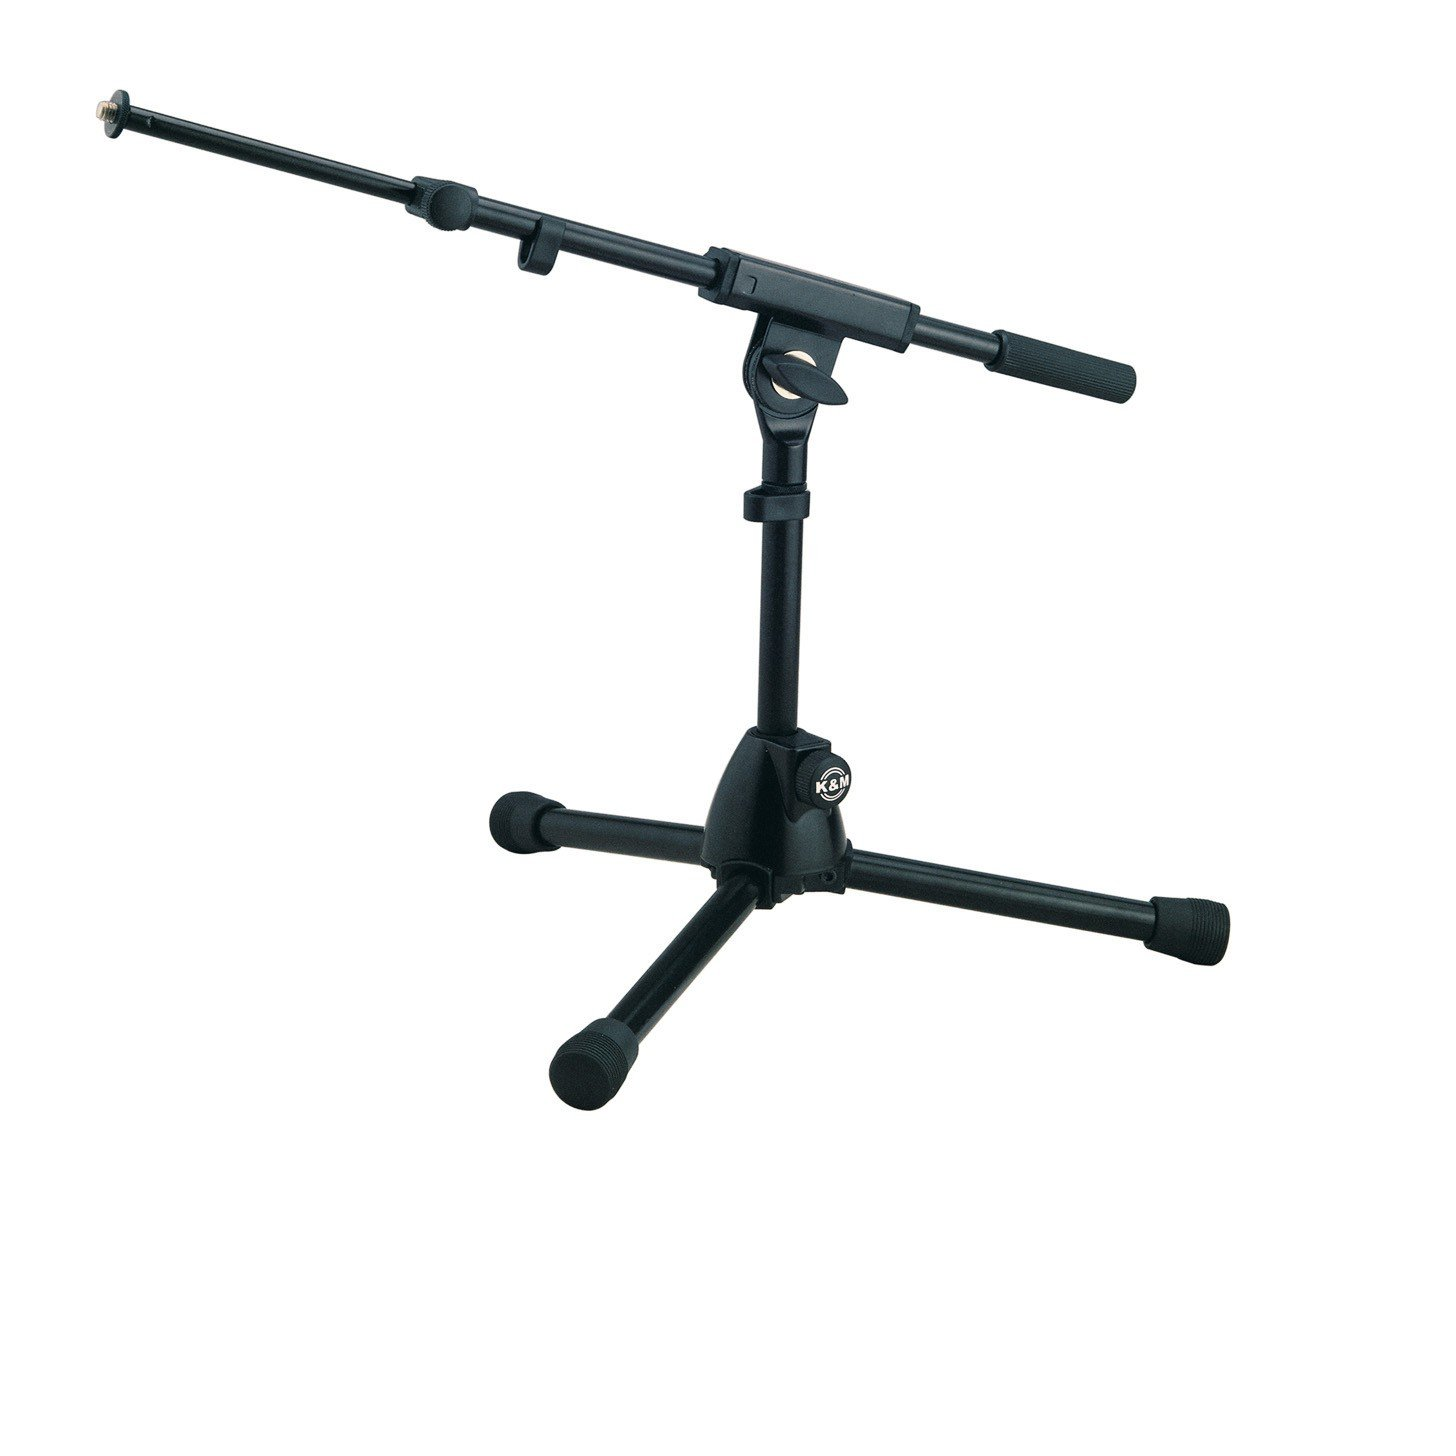 K&M Tour Grade Tripod Mic Stand with Weighted Short Legs for Kick Drum by K&M